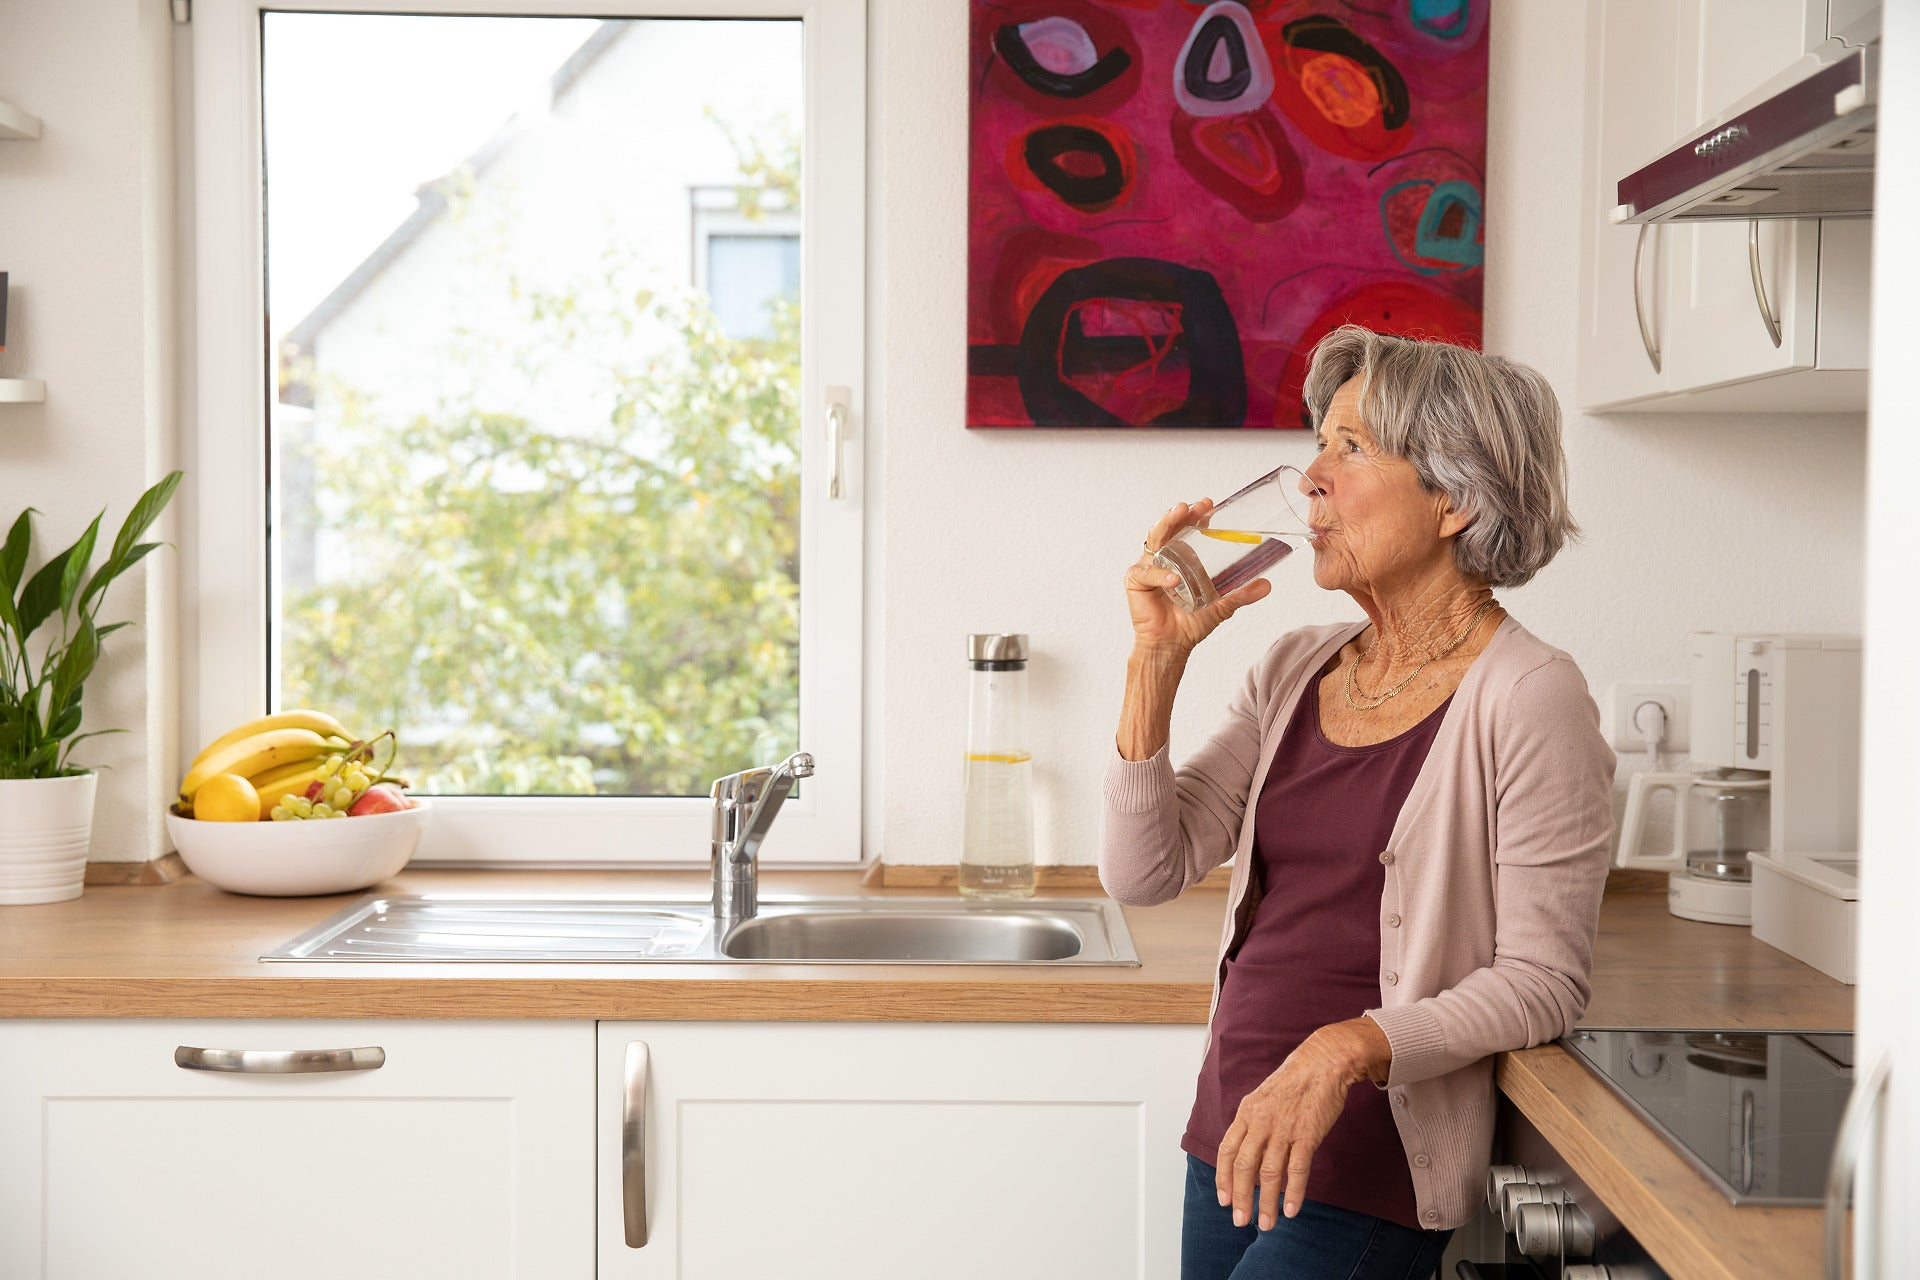 Food and drink to avoid when living with incontinence